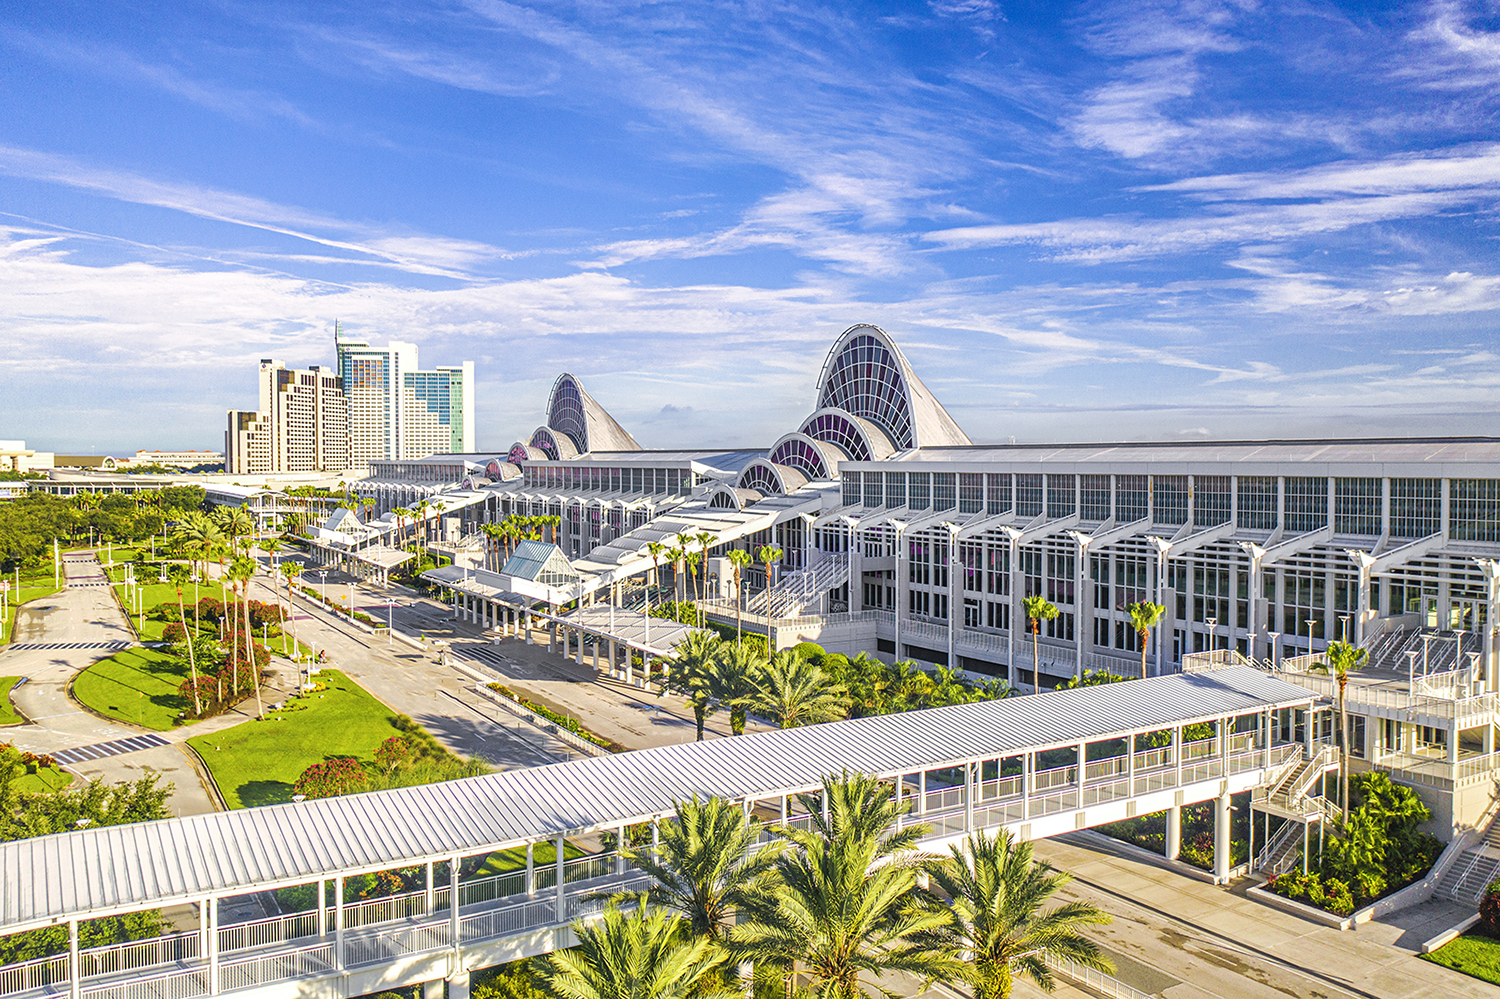 Orange County Convention Center Recognized as a Best Southeast US Convention  Center by Prevue Meeting & Incentives Magazine - Press Releases | Orange  County Convention Center